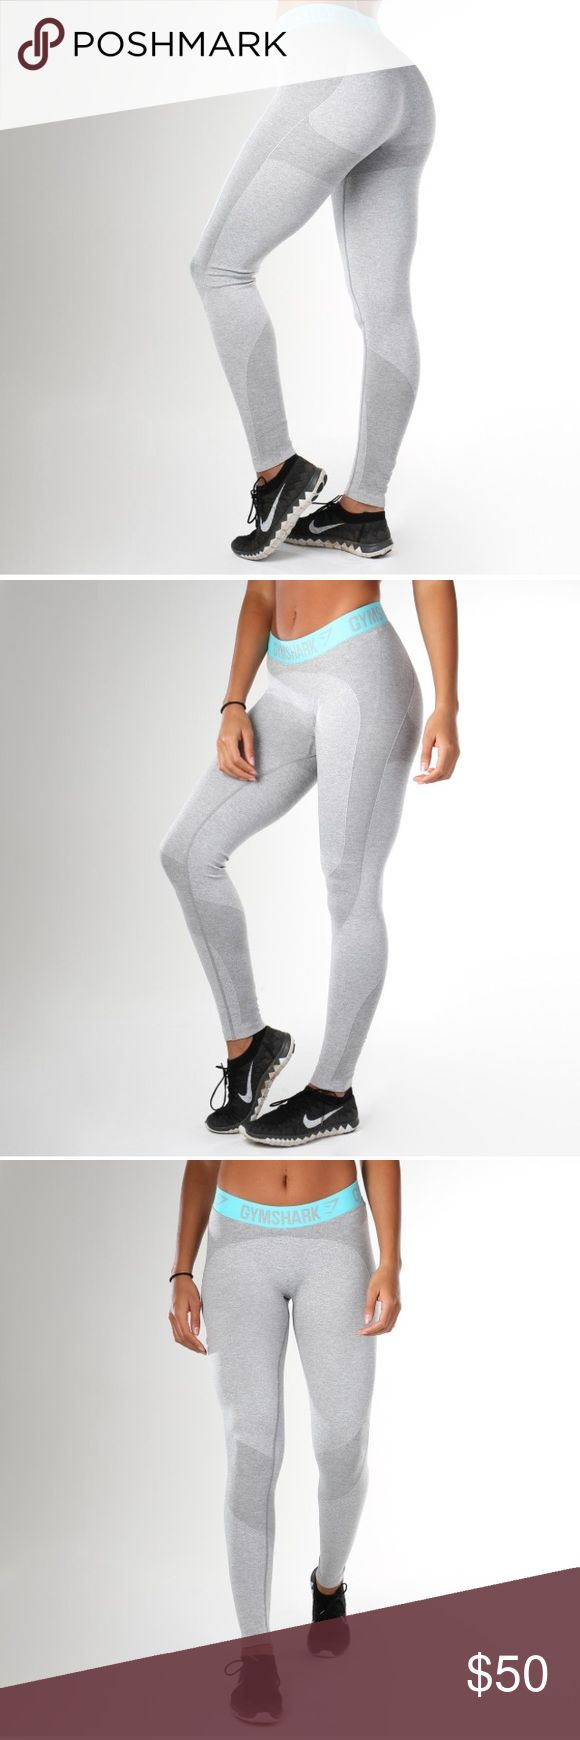 Gym Shark Flex Leggings in Light Grey I absolutely love these leggings and would keep if they were my size! Light grey with turquoise band. Soft, comfortable material. Shows off booty. Perfect condition. Never worn out. Gym Shark Pants Leggings